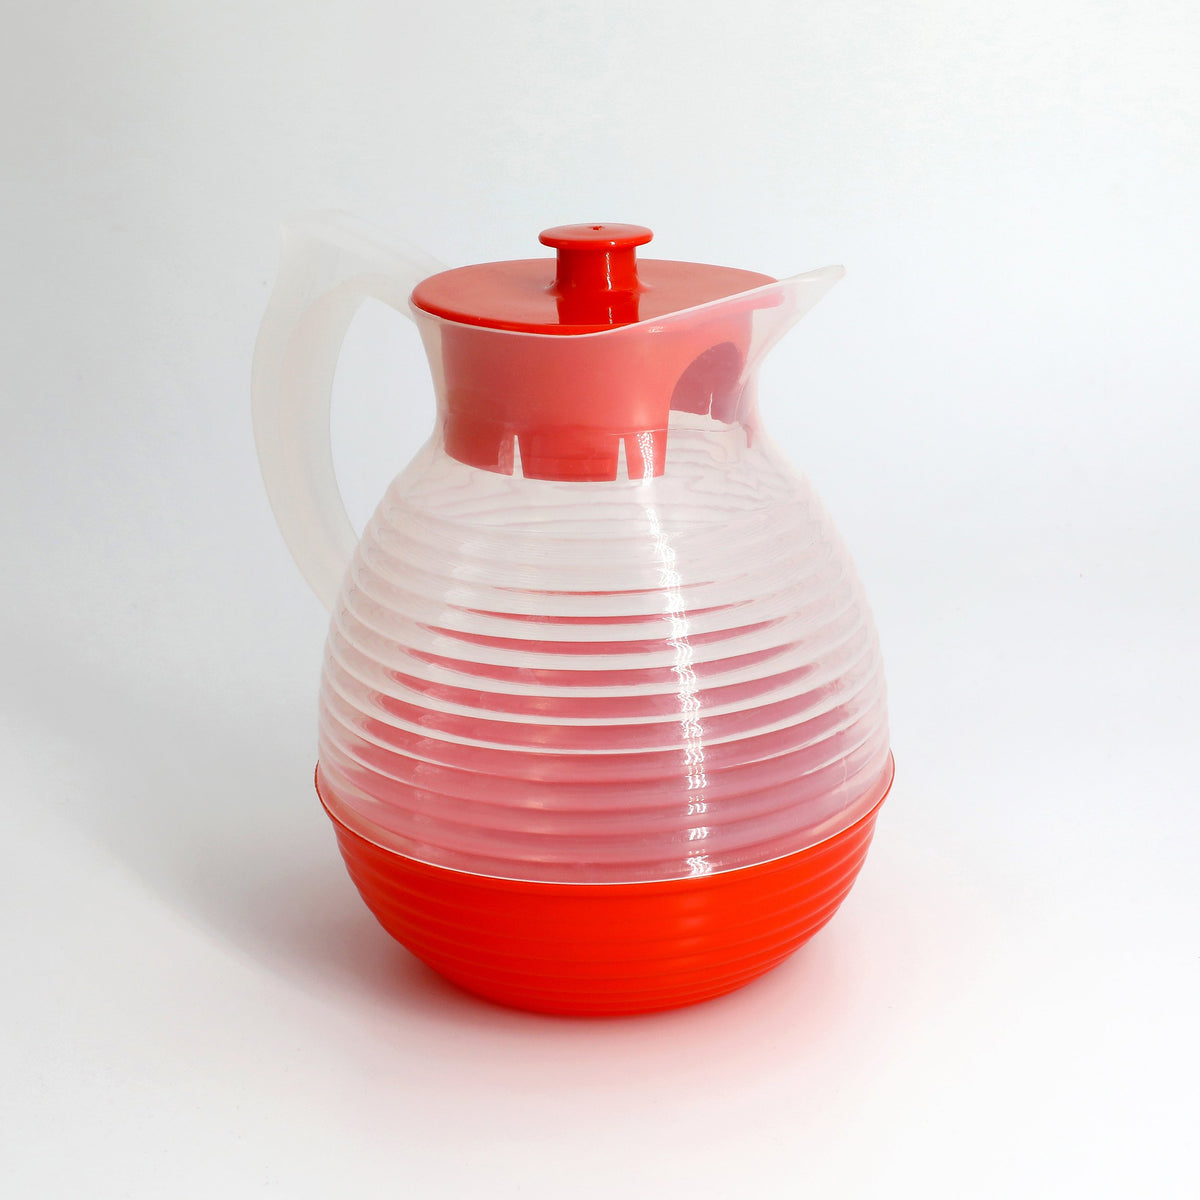 Carafe Vintage Design Originale Orange Objet Non Personnalisable